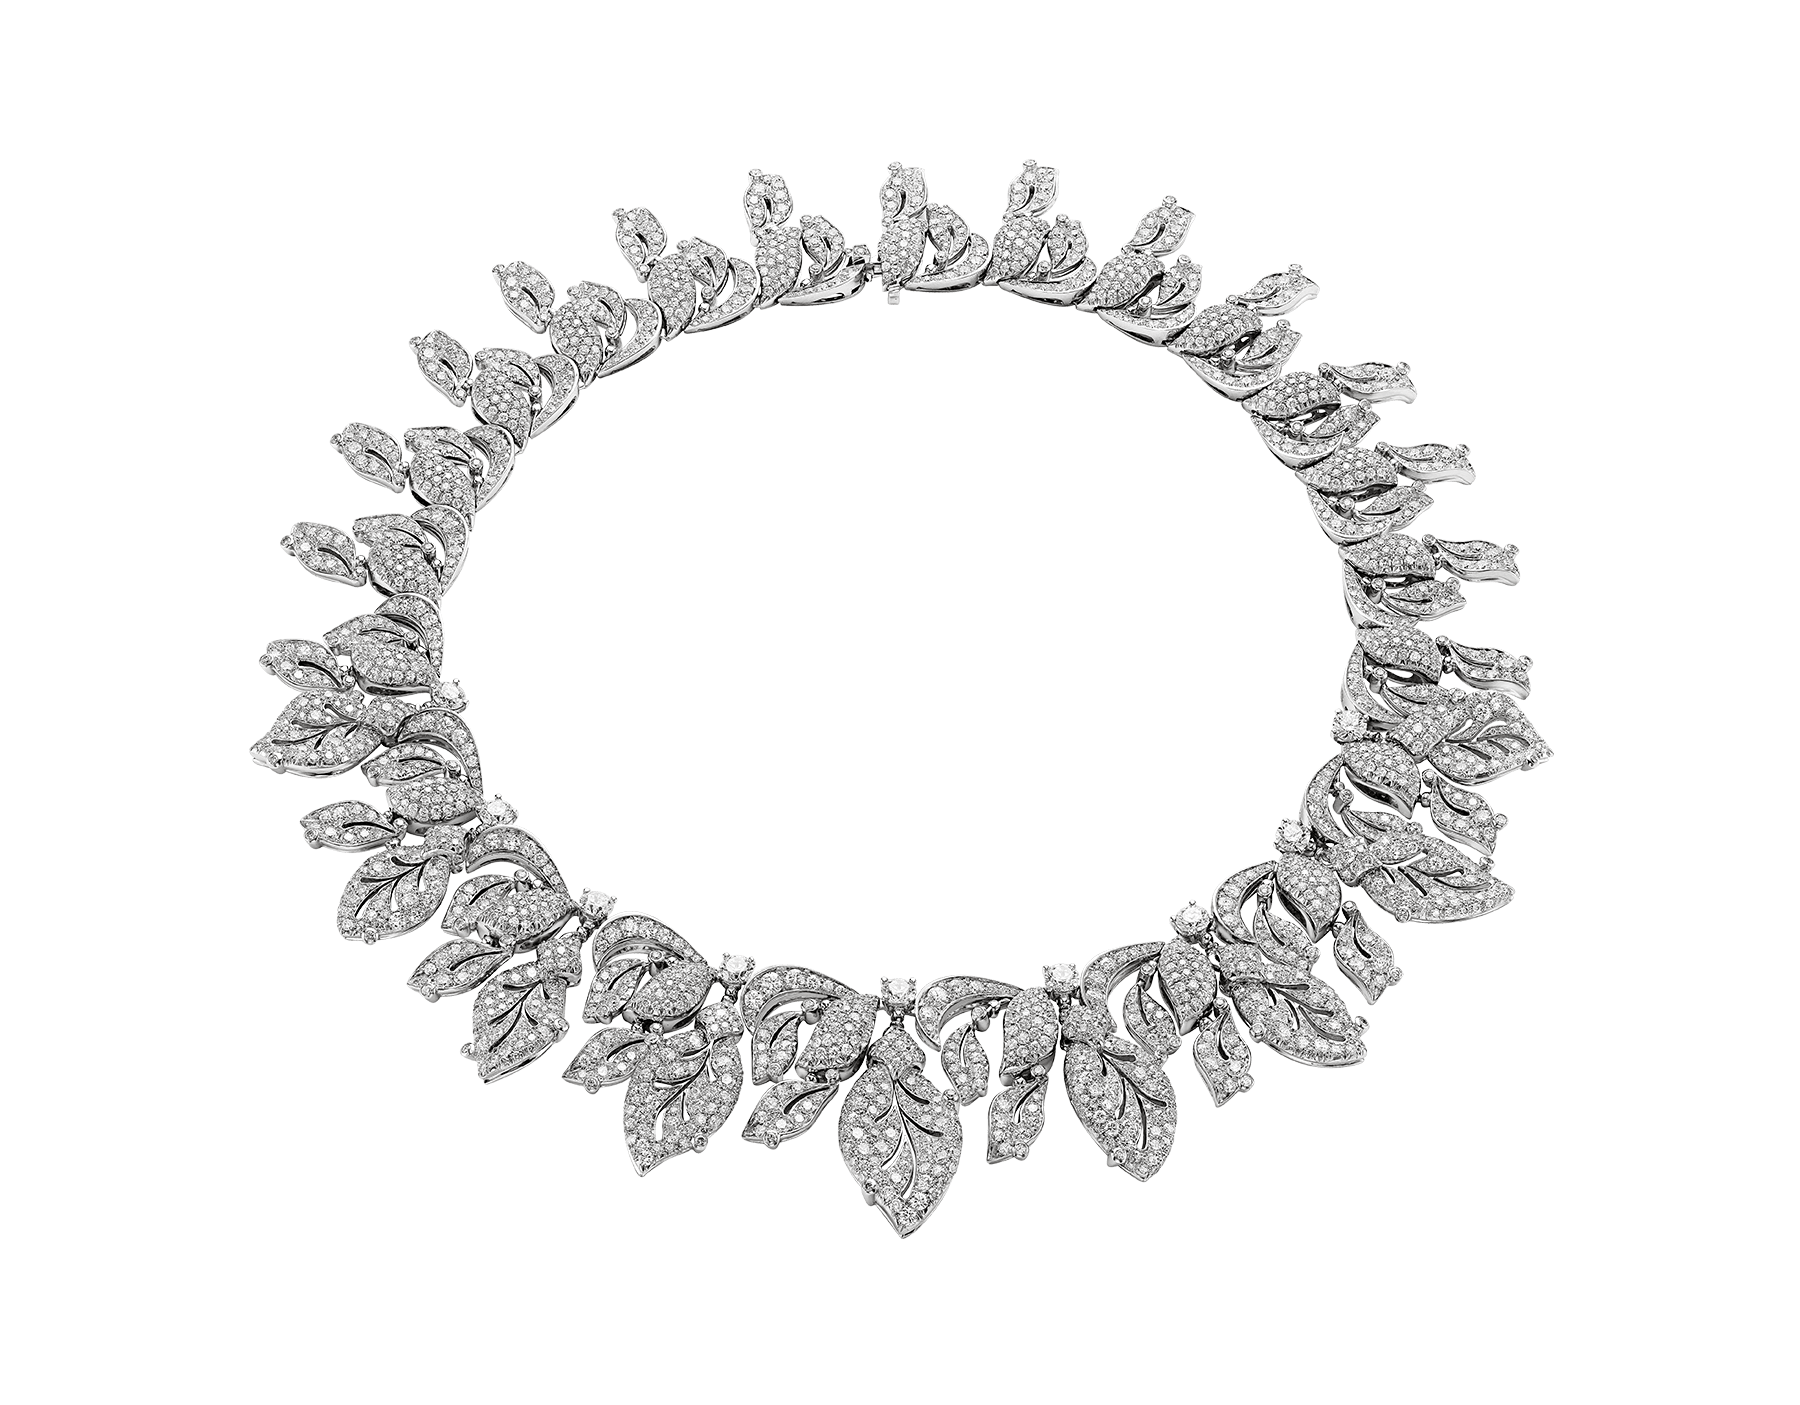 Celebrating the beauty of winter with swinging leaves encrusted with a sparkling frost of diamond pavé, the Giardini Italiani necklace captures the unique magic of nature. 260283 image 1